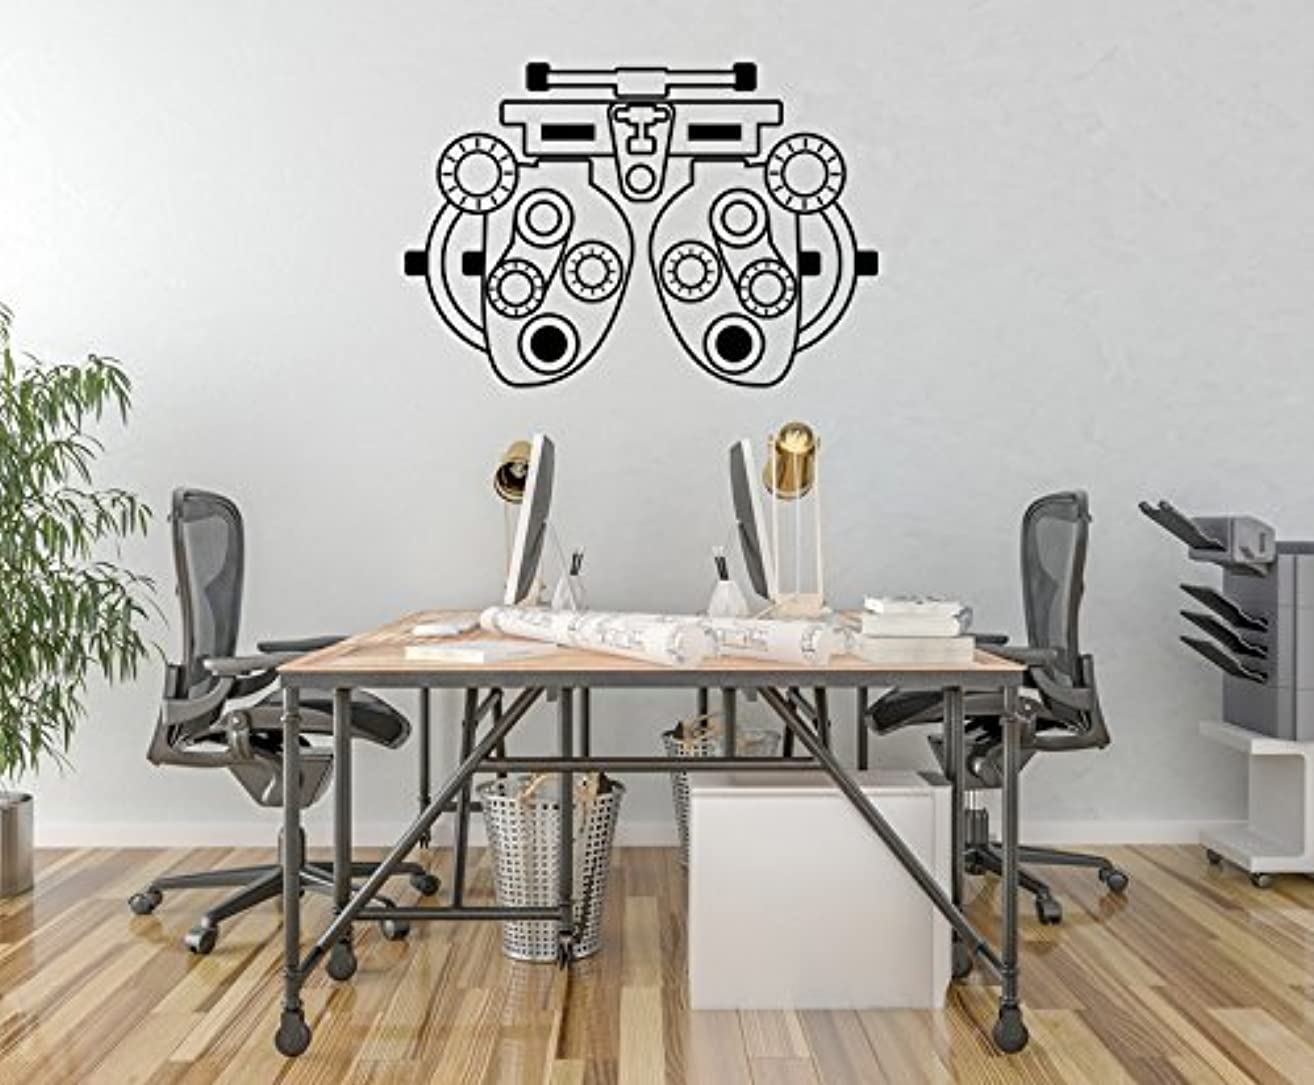 Phoropter Wall Decal, Optometry Decor, Optometrist Decor, Optometry Art, Refractor Decal, Optometrist Gift, Optometry Office